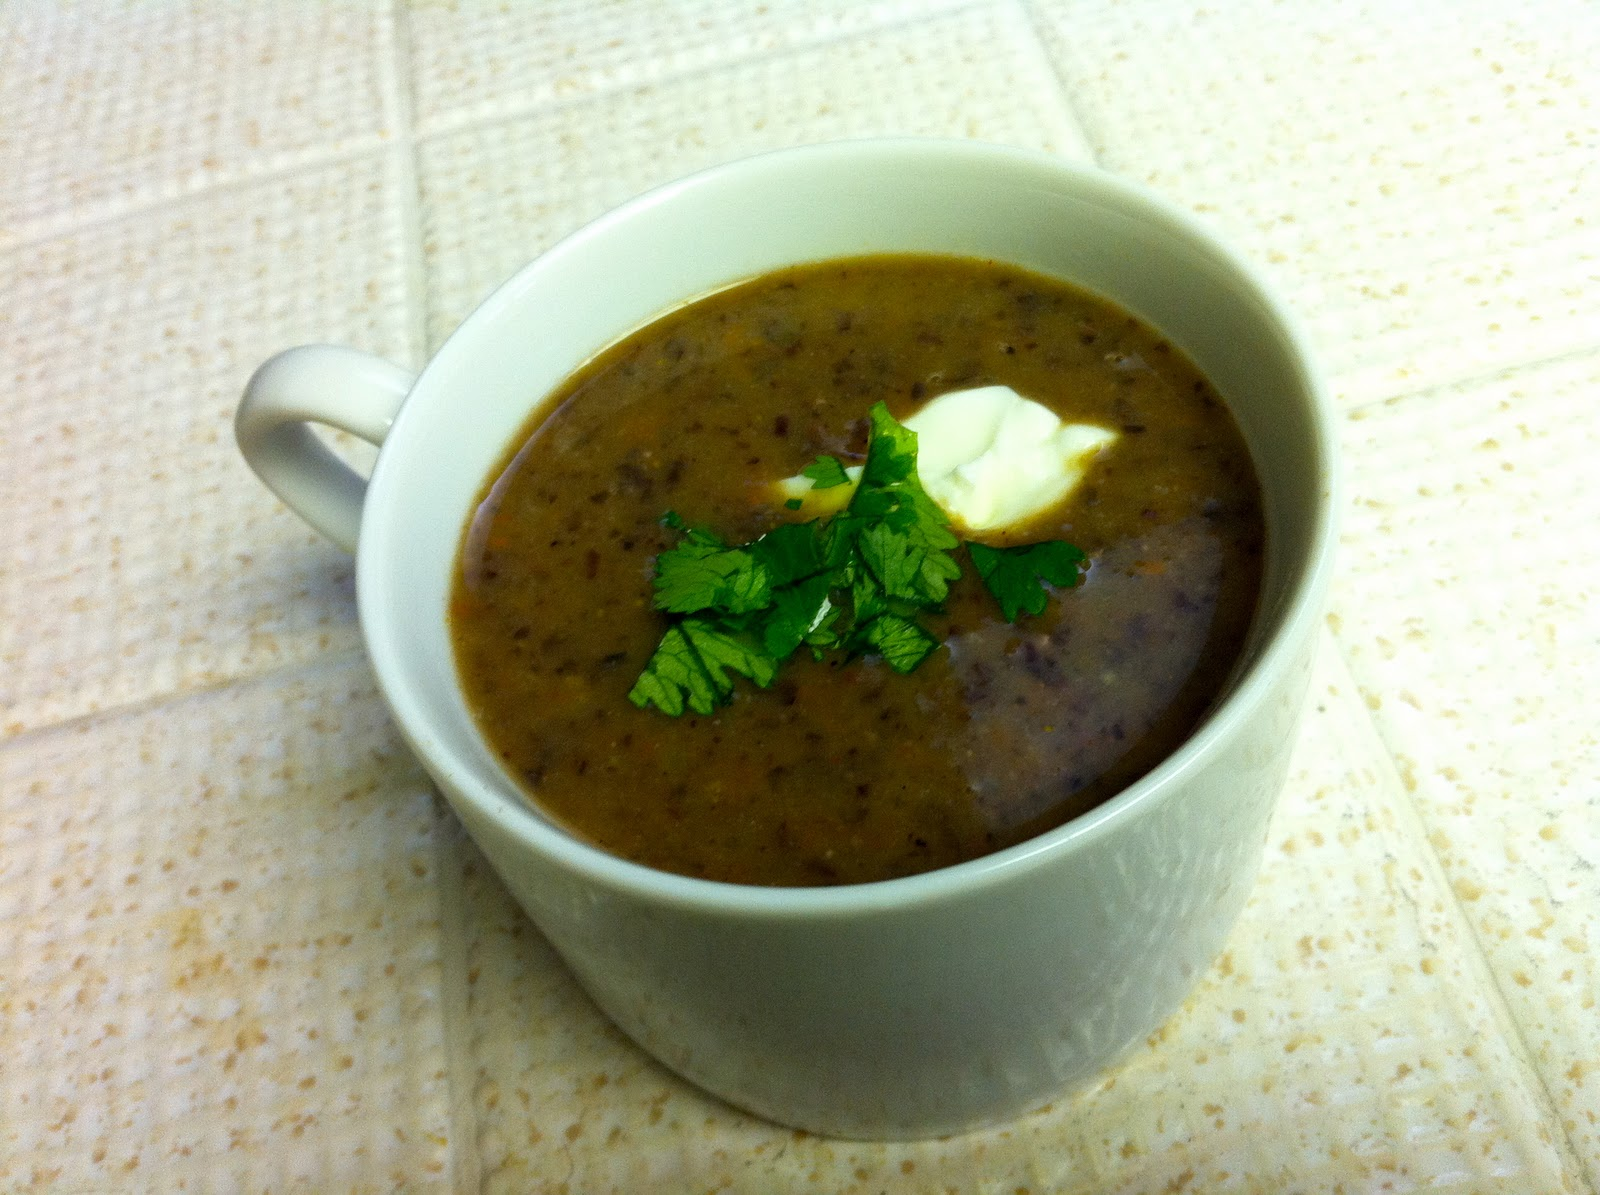 Foodie Journey: Quick Spicy Black Bean Soup